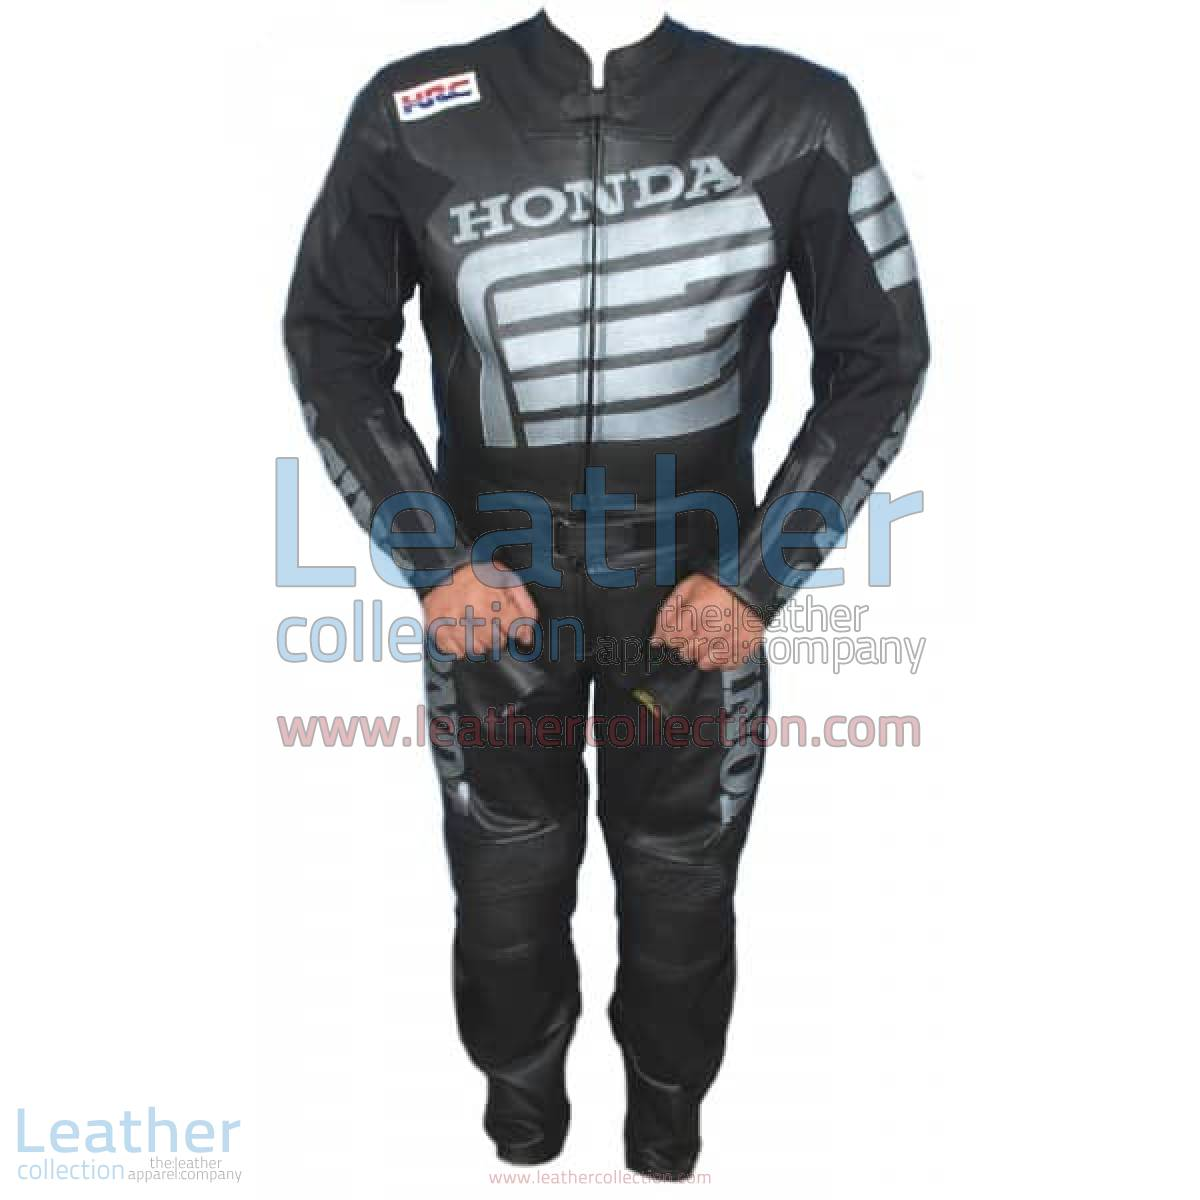 Honda Motorcycle Leather Suit | motorcycle leather suit